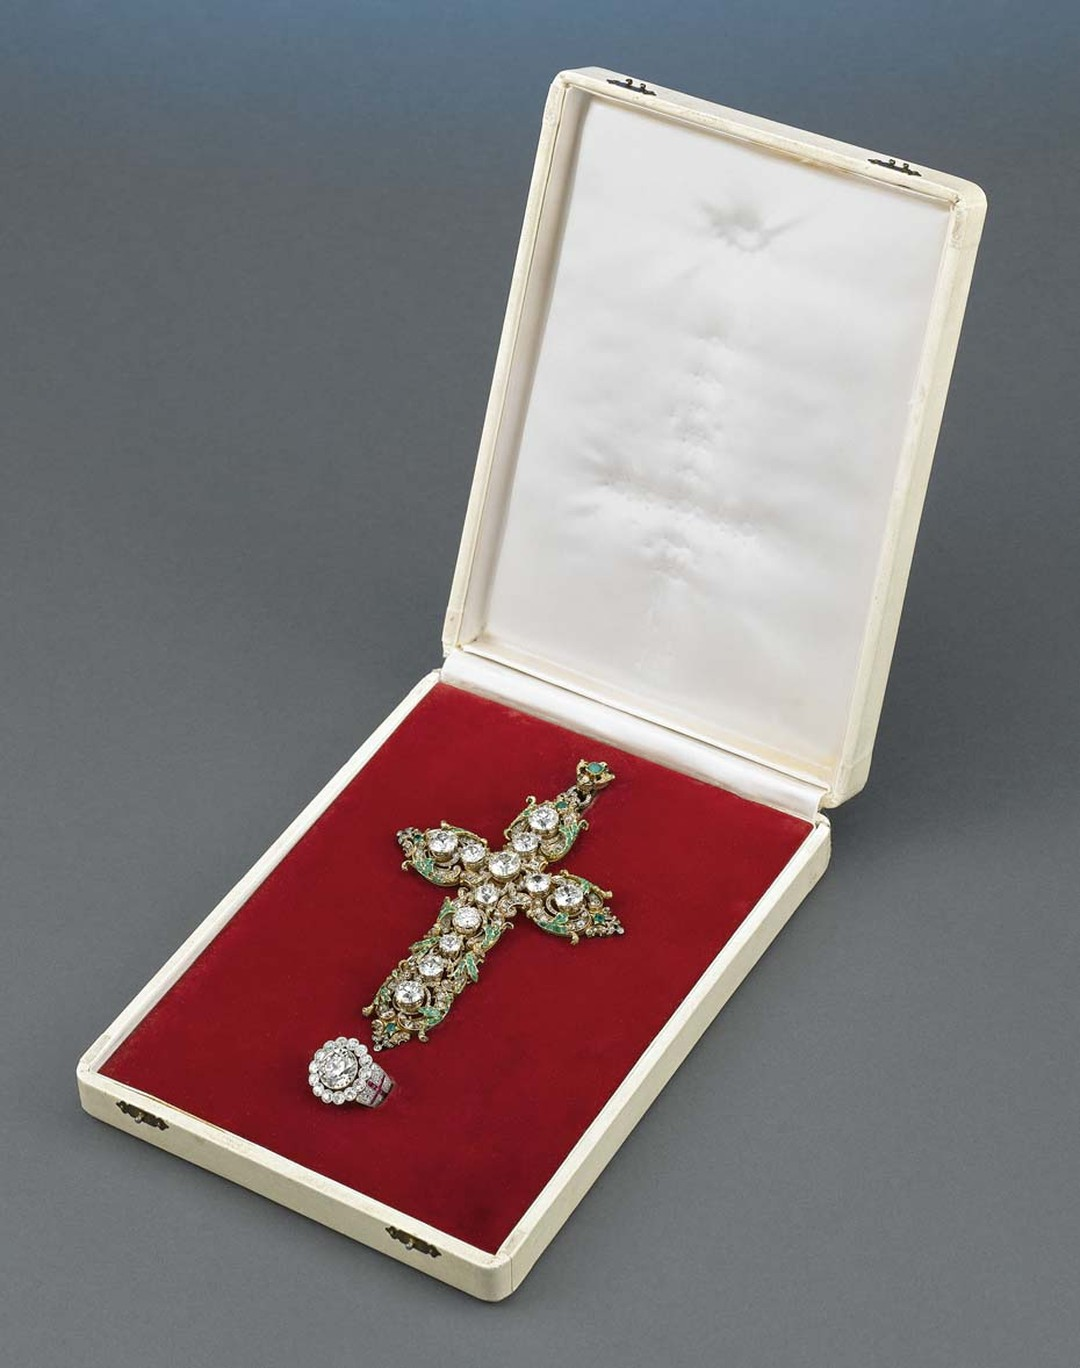 Since being sold by Pope Paul VI in 1967 to raise money for human relief funds, the diamond cross and ring have had several owners, including Chicago jeweller Harry Levinson and daredevil Evel Knievel.